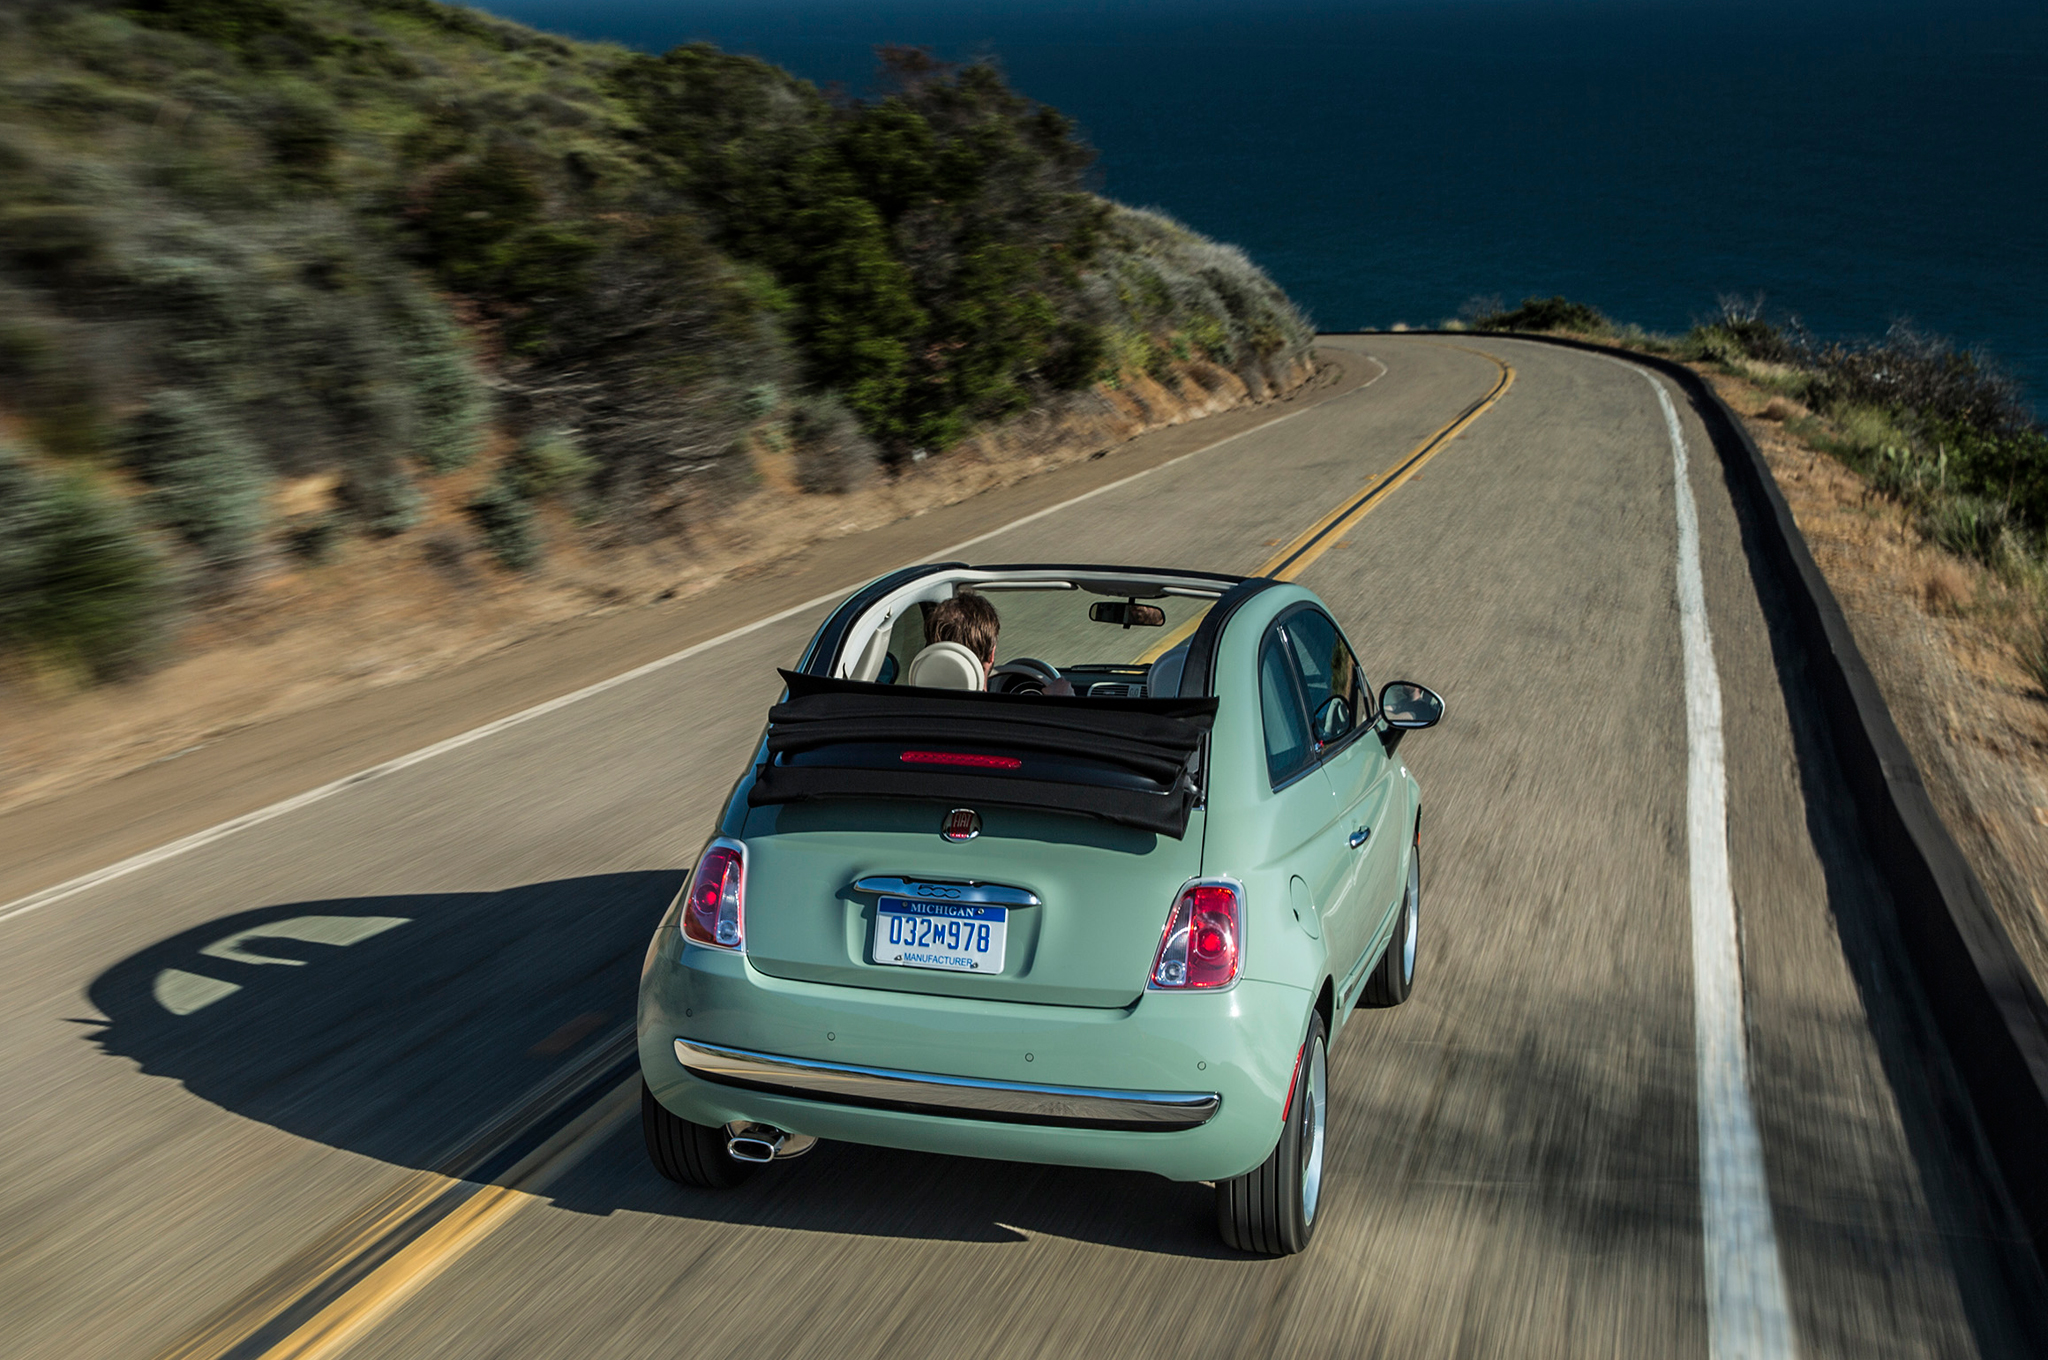 2015 Fiat 500 1957 Edition Spreads To Convertible Model